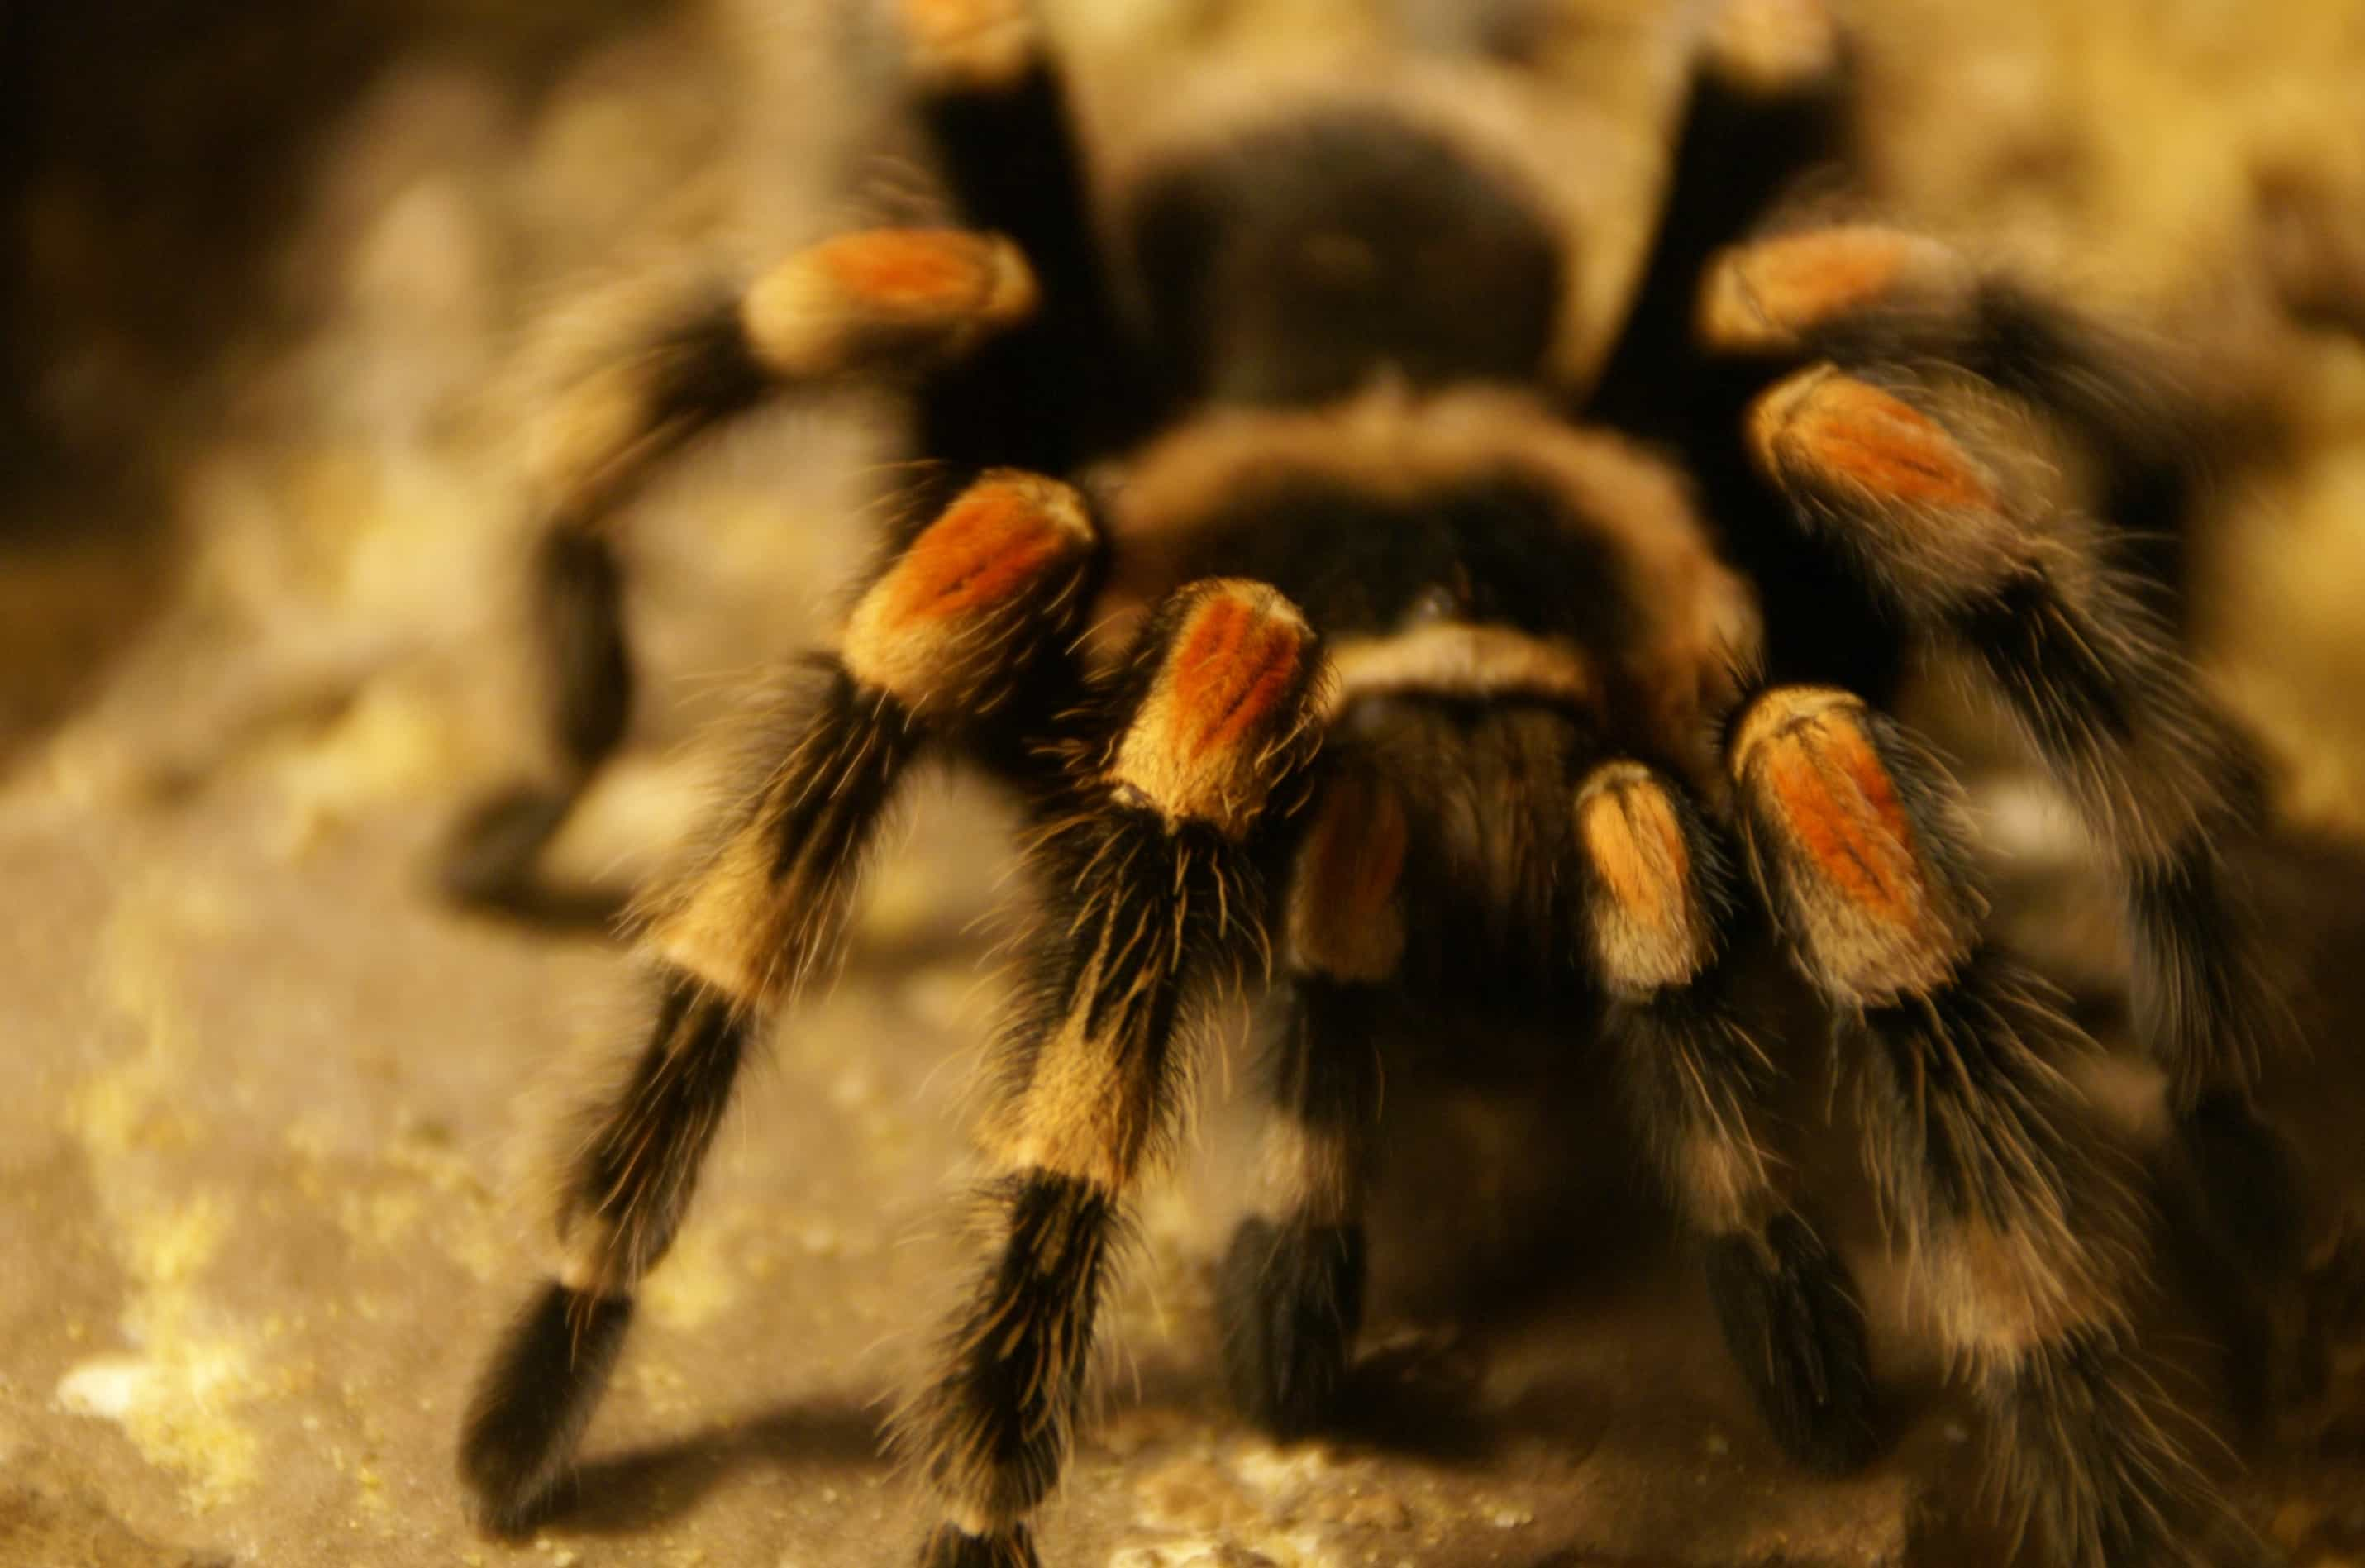 Mexican Red Knee Tarantula (chypelma smithi) - Tarantula ... on map where do tarantula, how long do tarantulas live, map of where camels are from, where do tarantulas live, map where do lizards live on a glass, map of brown recluse spiders in the us, map of arkansas, were tarantula live, map where do praying mantis live, map of mississippi natural resources, maps of where the brown widows live, map of tarantulas in us, map of tarantula hawk wasp,